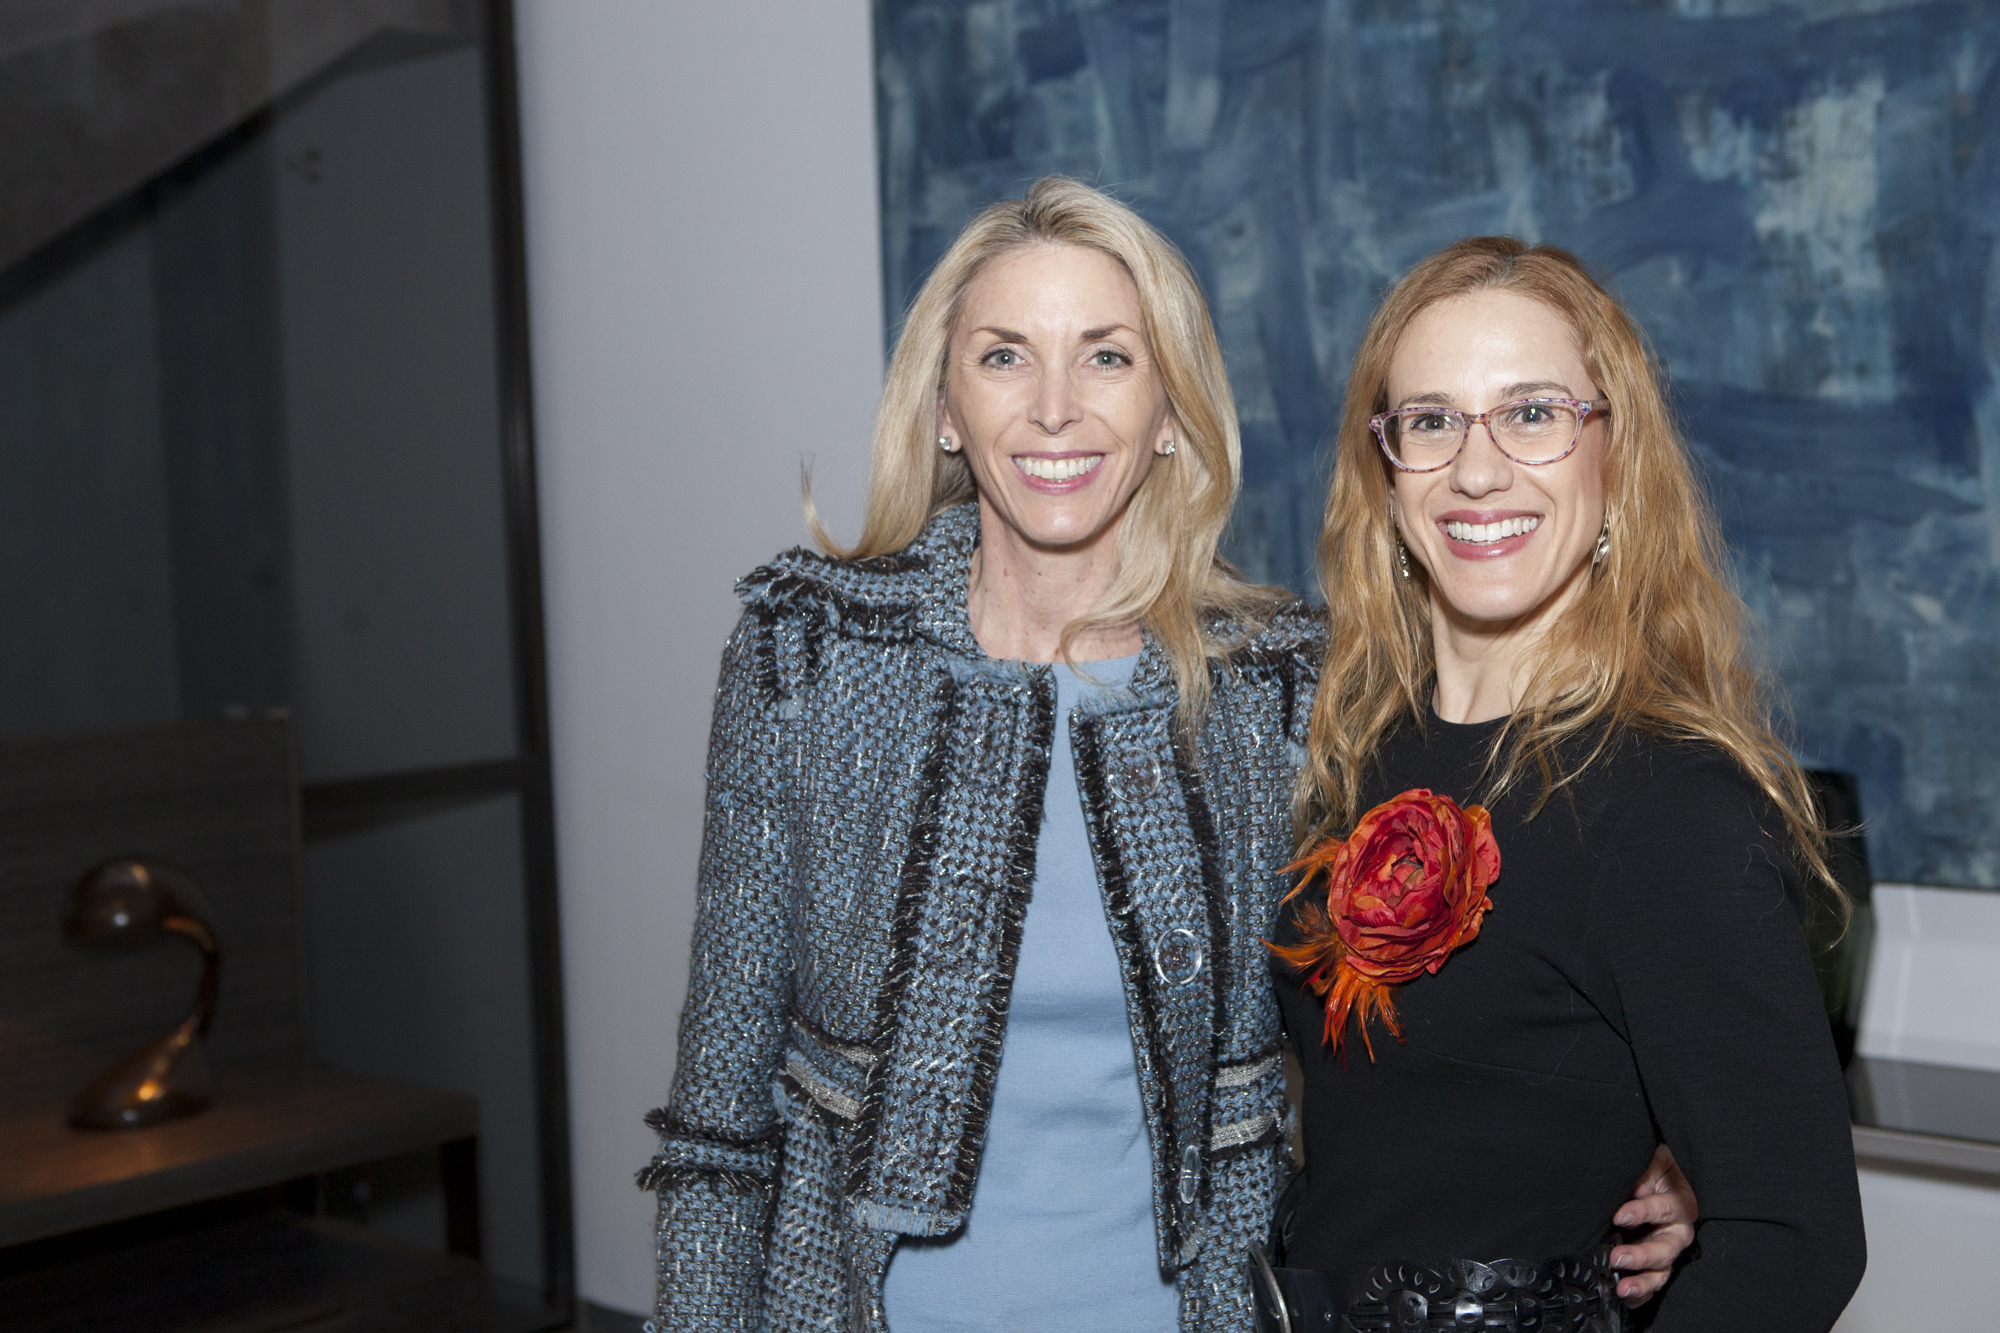 Clair Fitzgerald and Dana Solomon